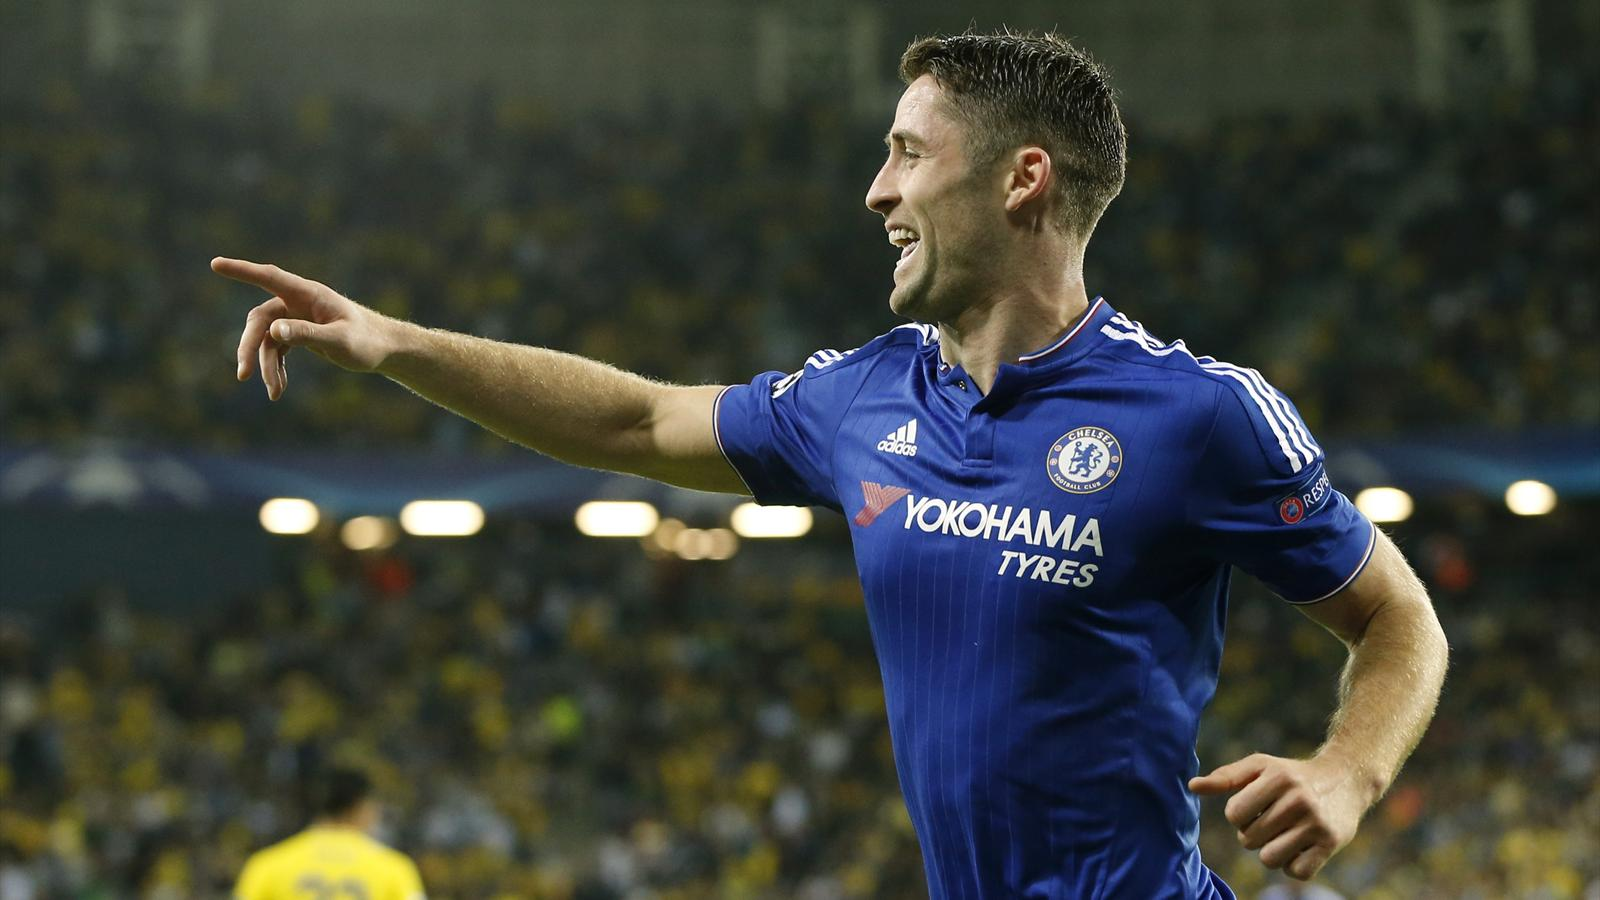 Gary Cahill celebrates after scoring for Chelsea